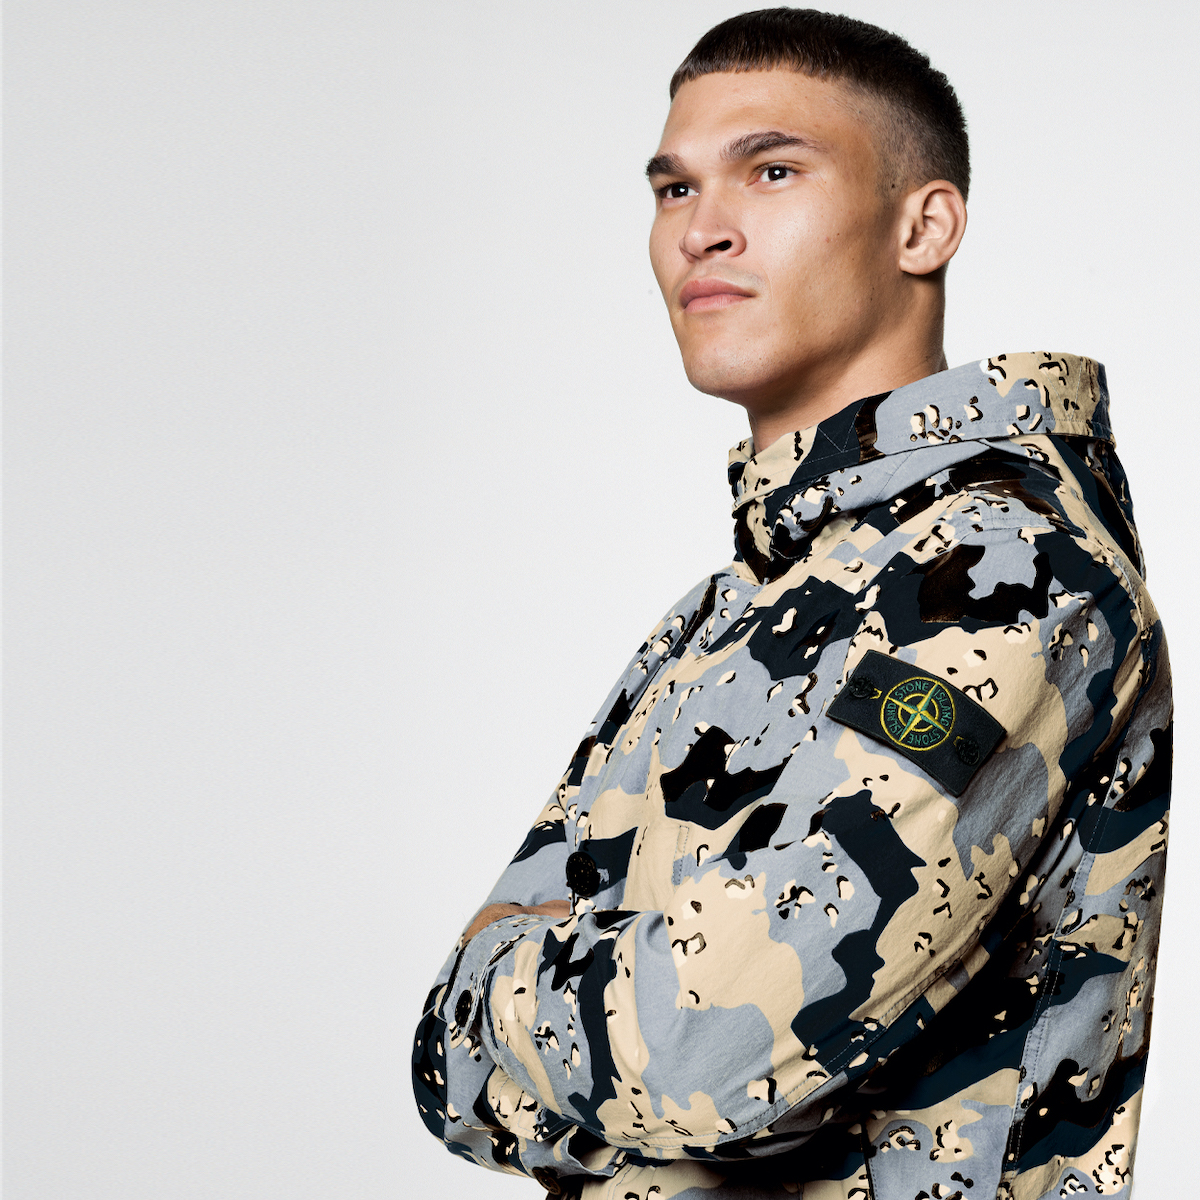 Stone Island drop Six-Piece Camo Collection exclusively at Browns